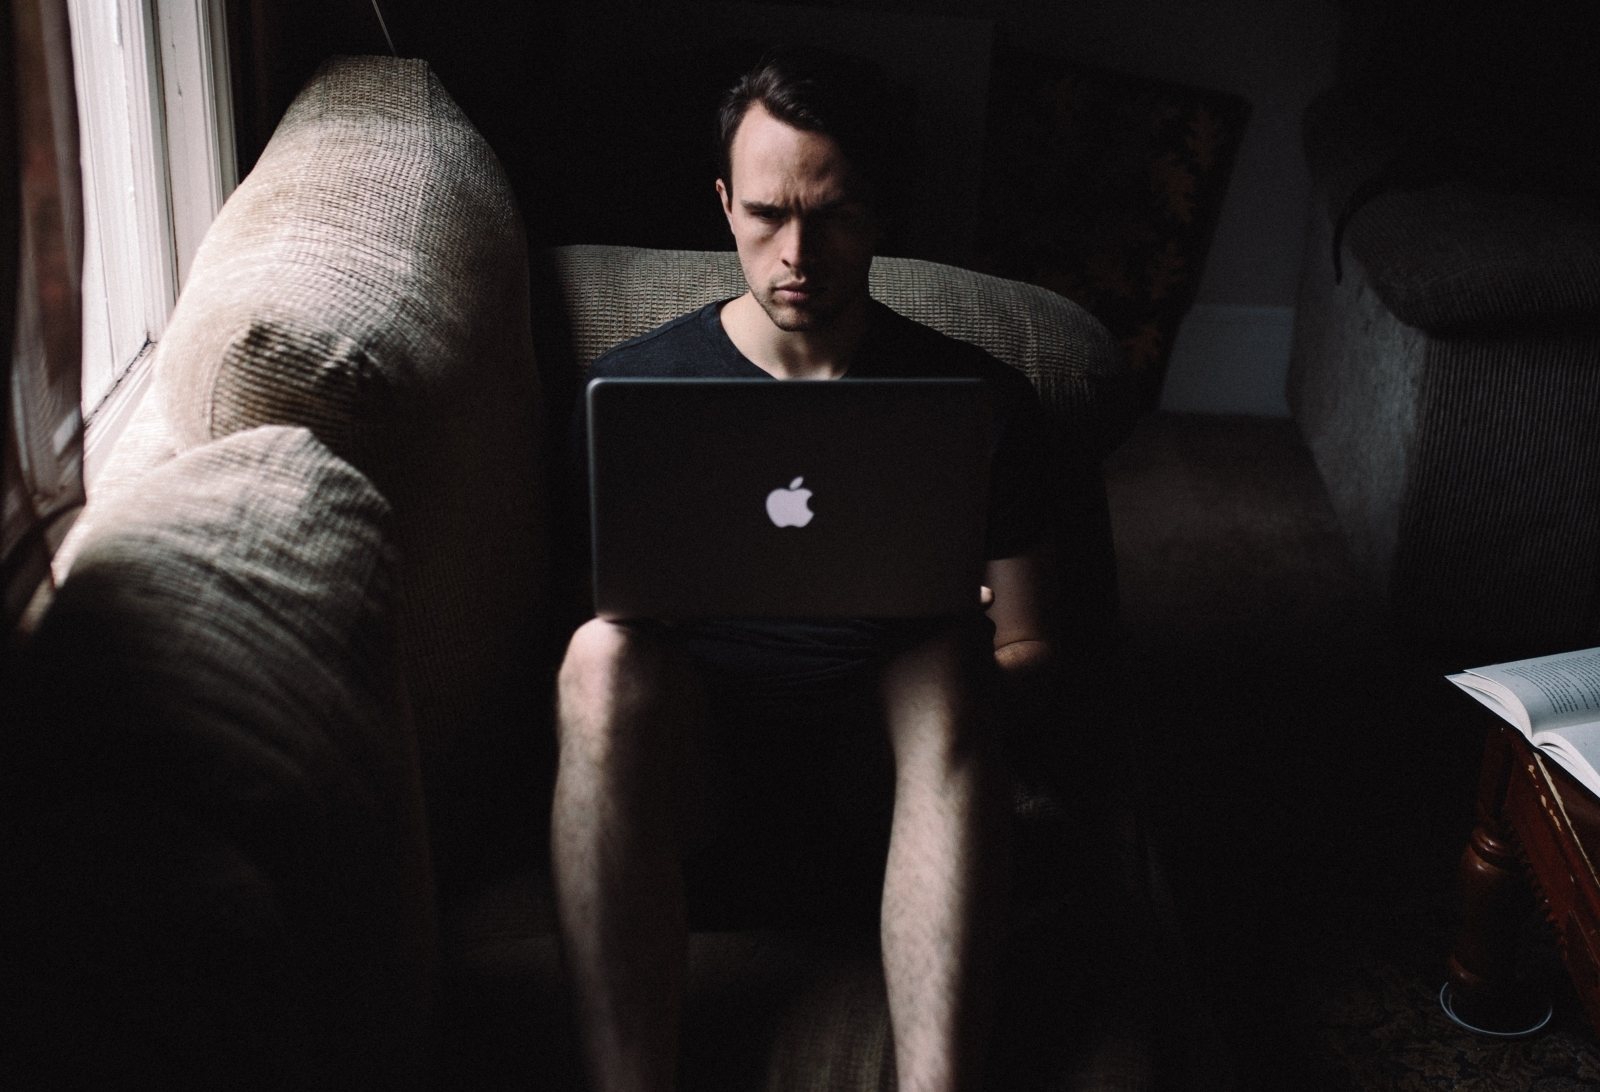 Man on a laptop in the dark